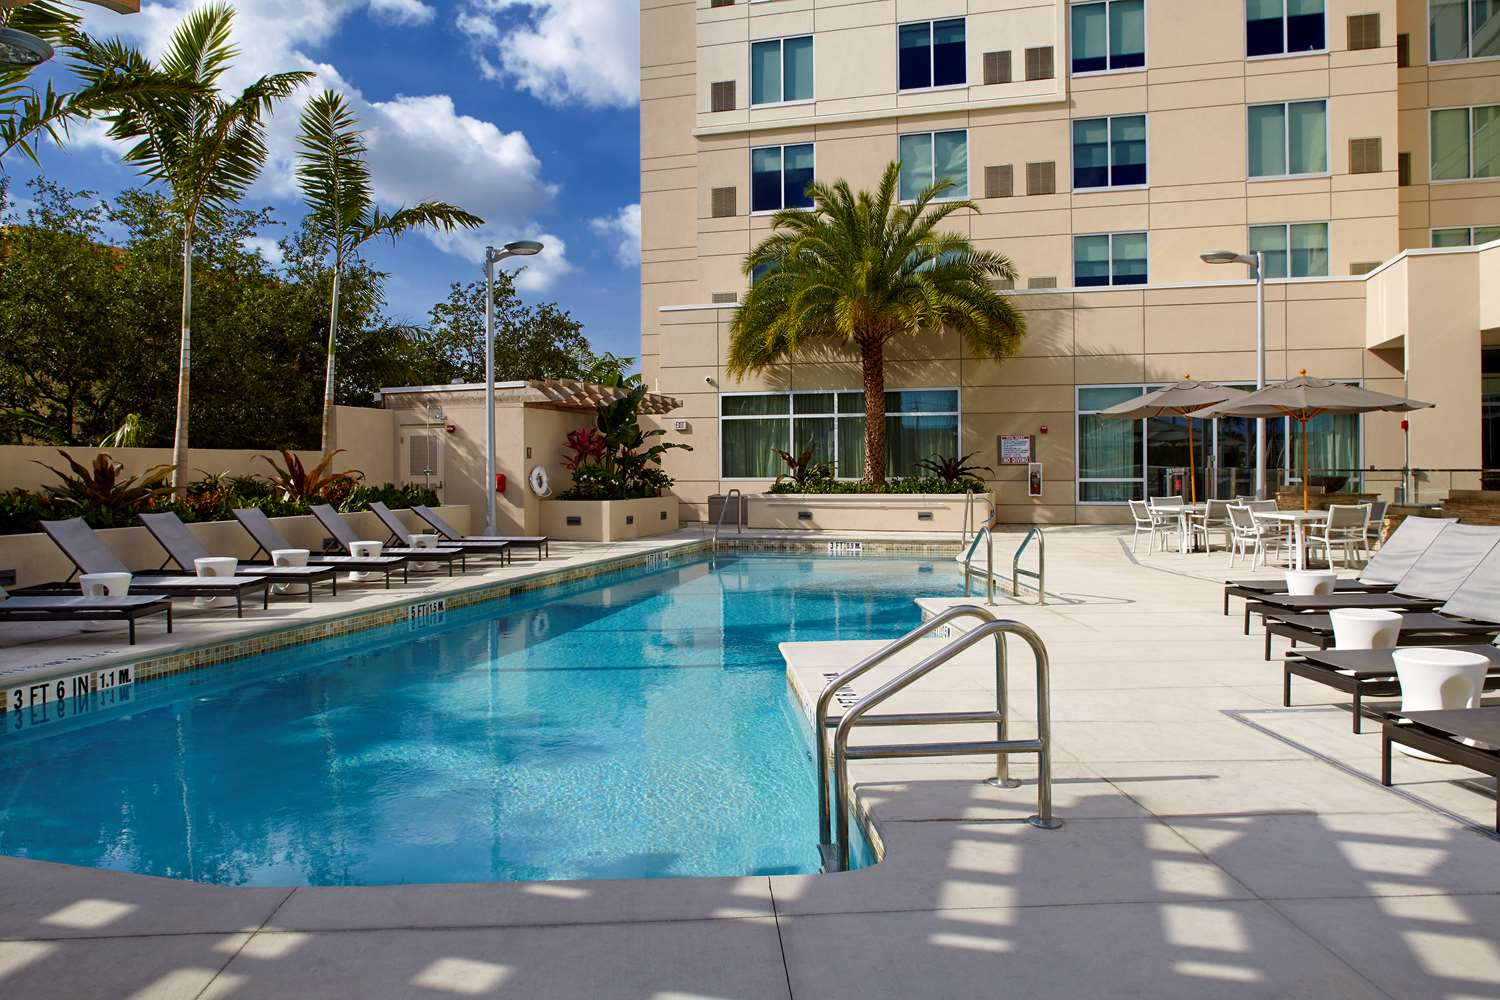 Pool - Hyatt Place Hotel Miami Airport East